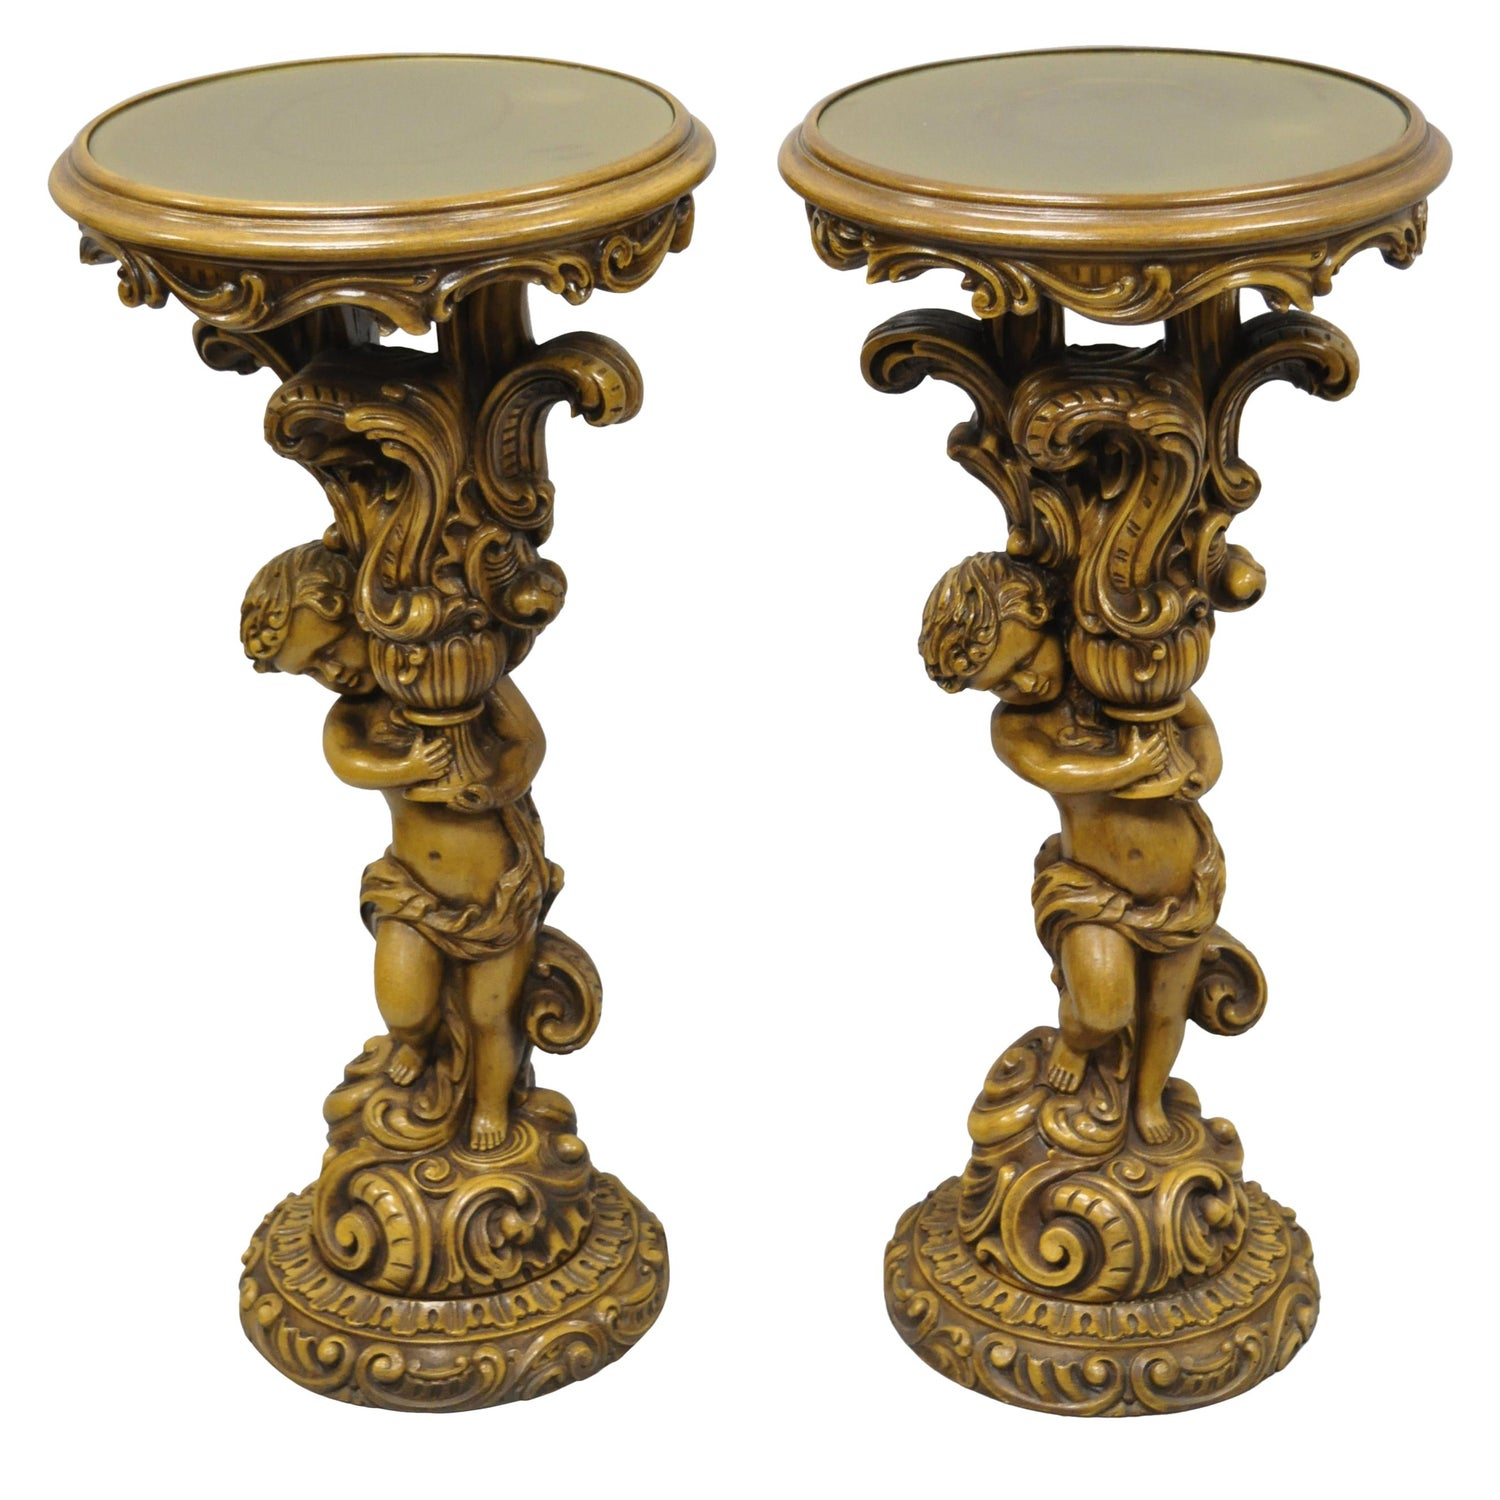 Pair Of French Rococo Style Figural Cherub Angel Pedestal Plant Stands Table For Sale At 1stdibs